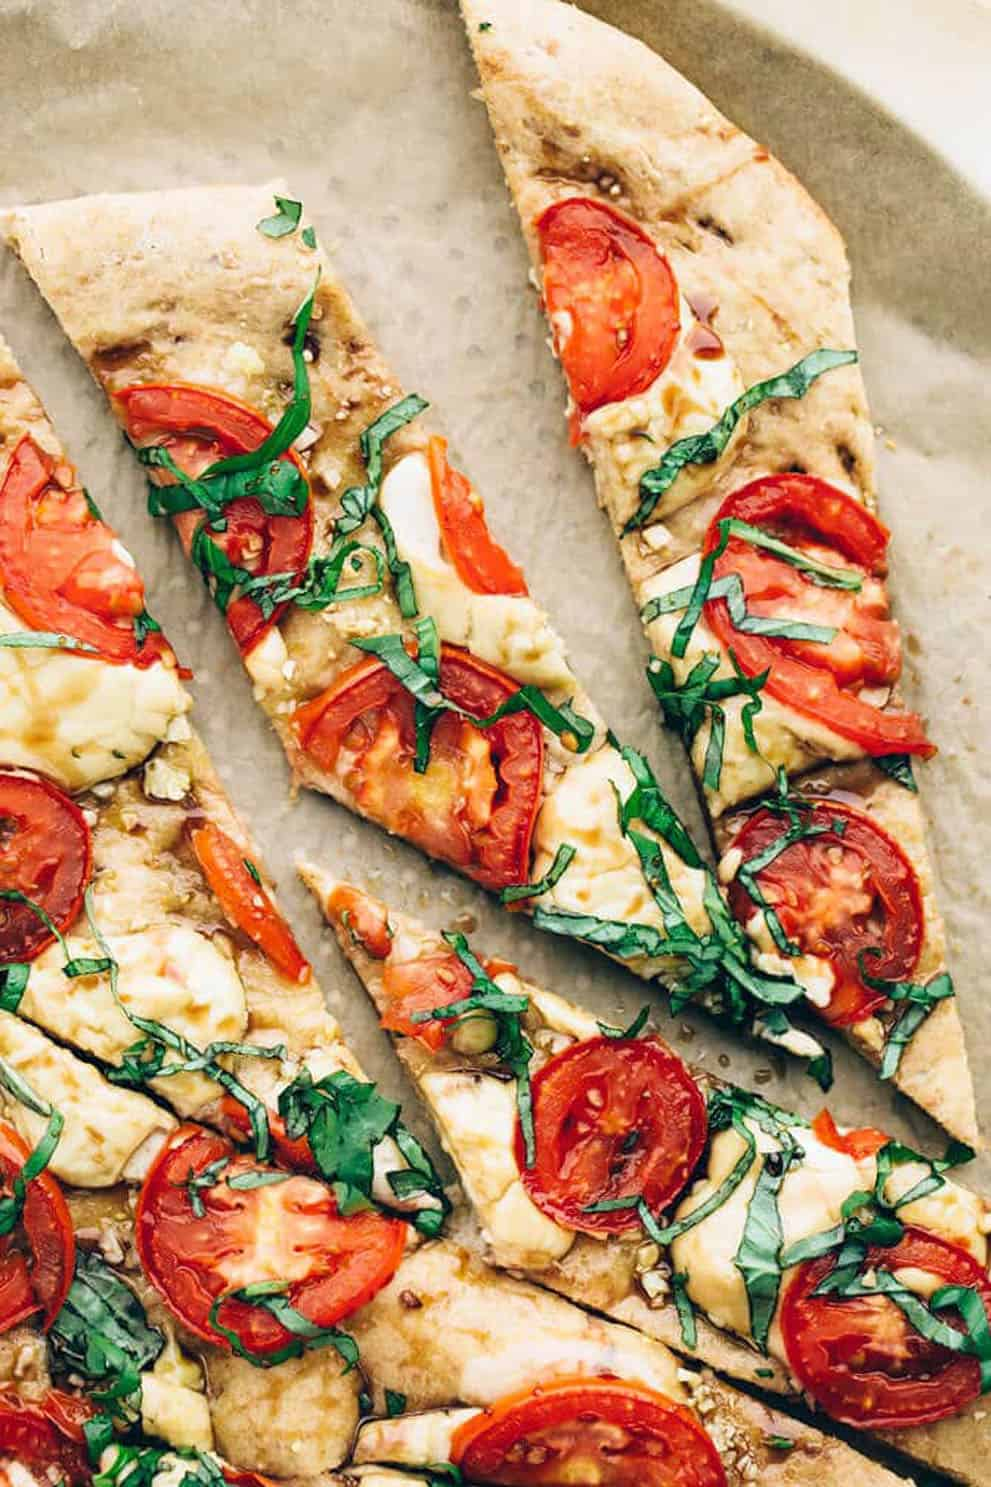 Slices of vegan caprese pizza on parchment paper - Blissful Basil